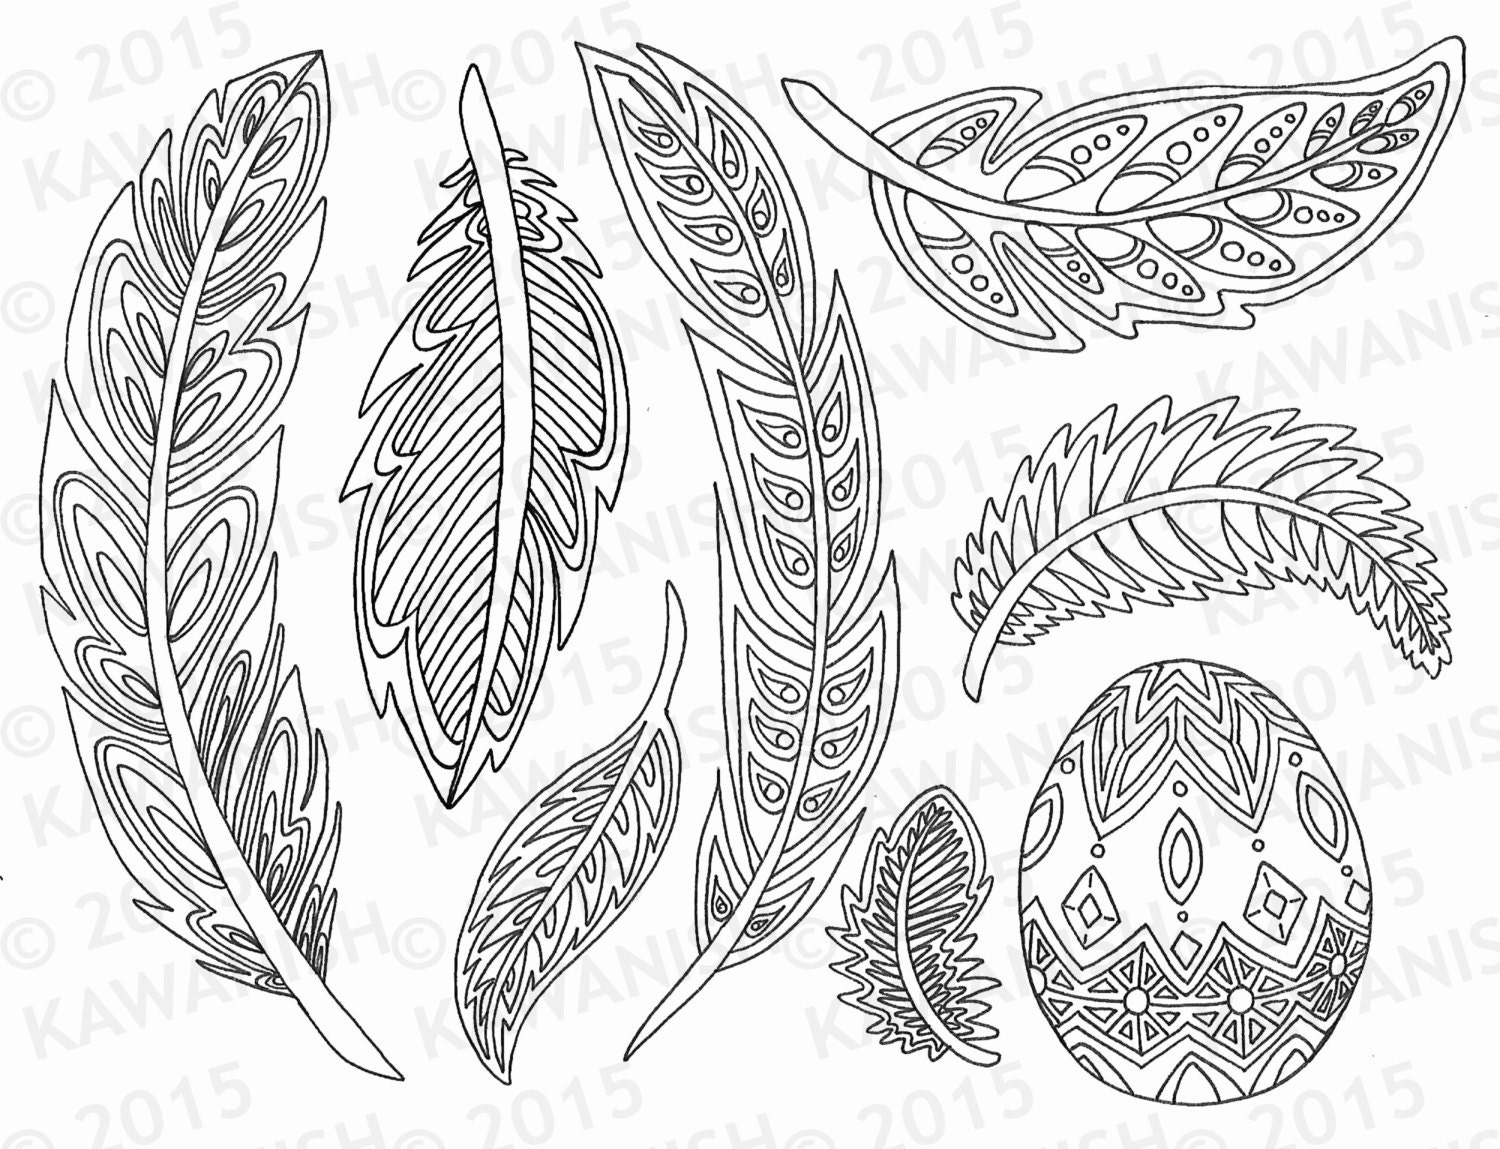 Feathers coloring page gift wall art line drawing for Coloring pages of feathers